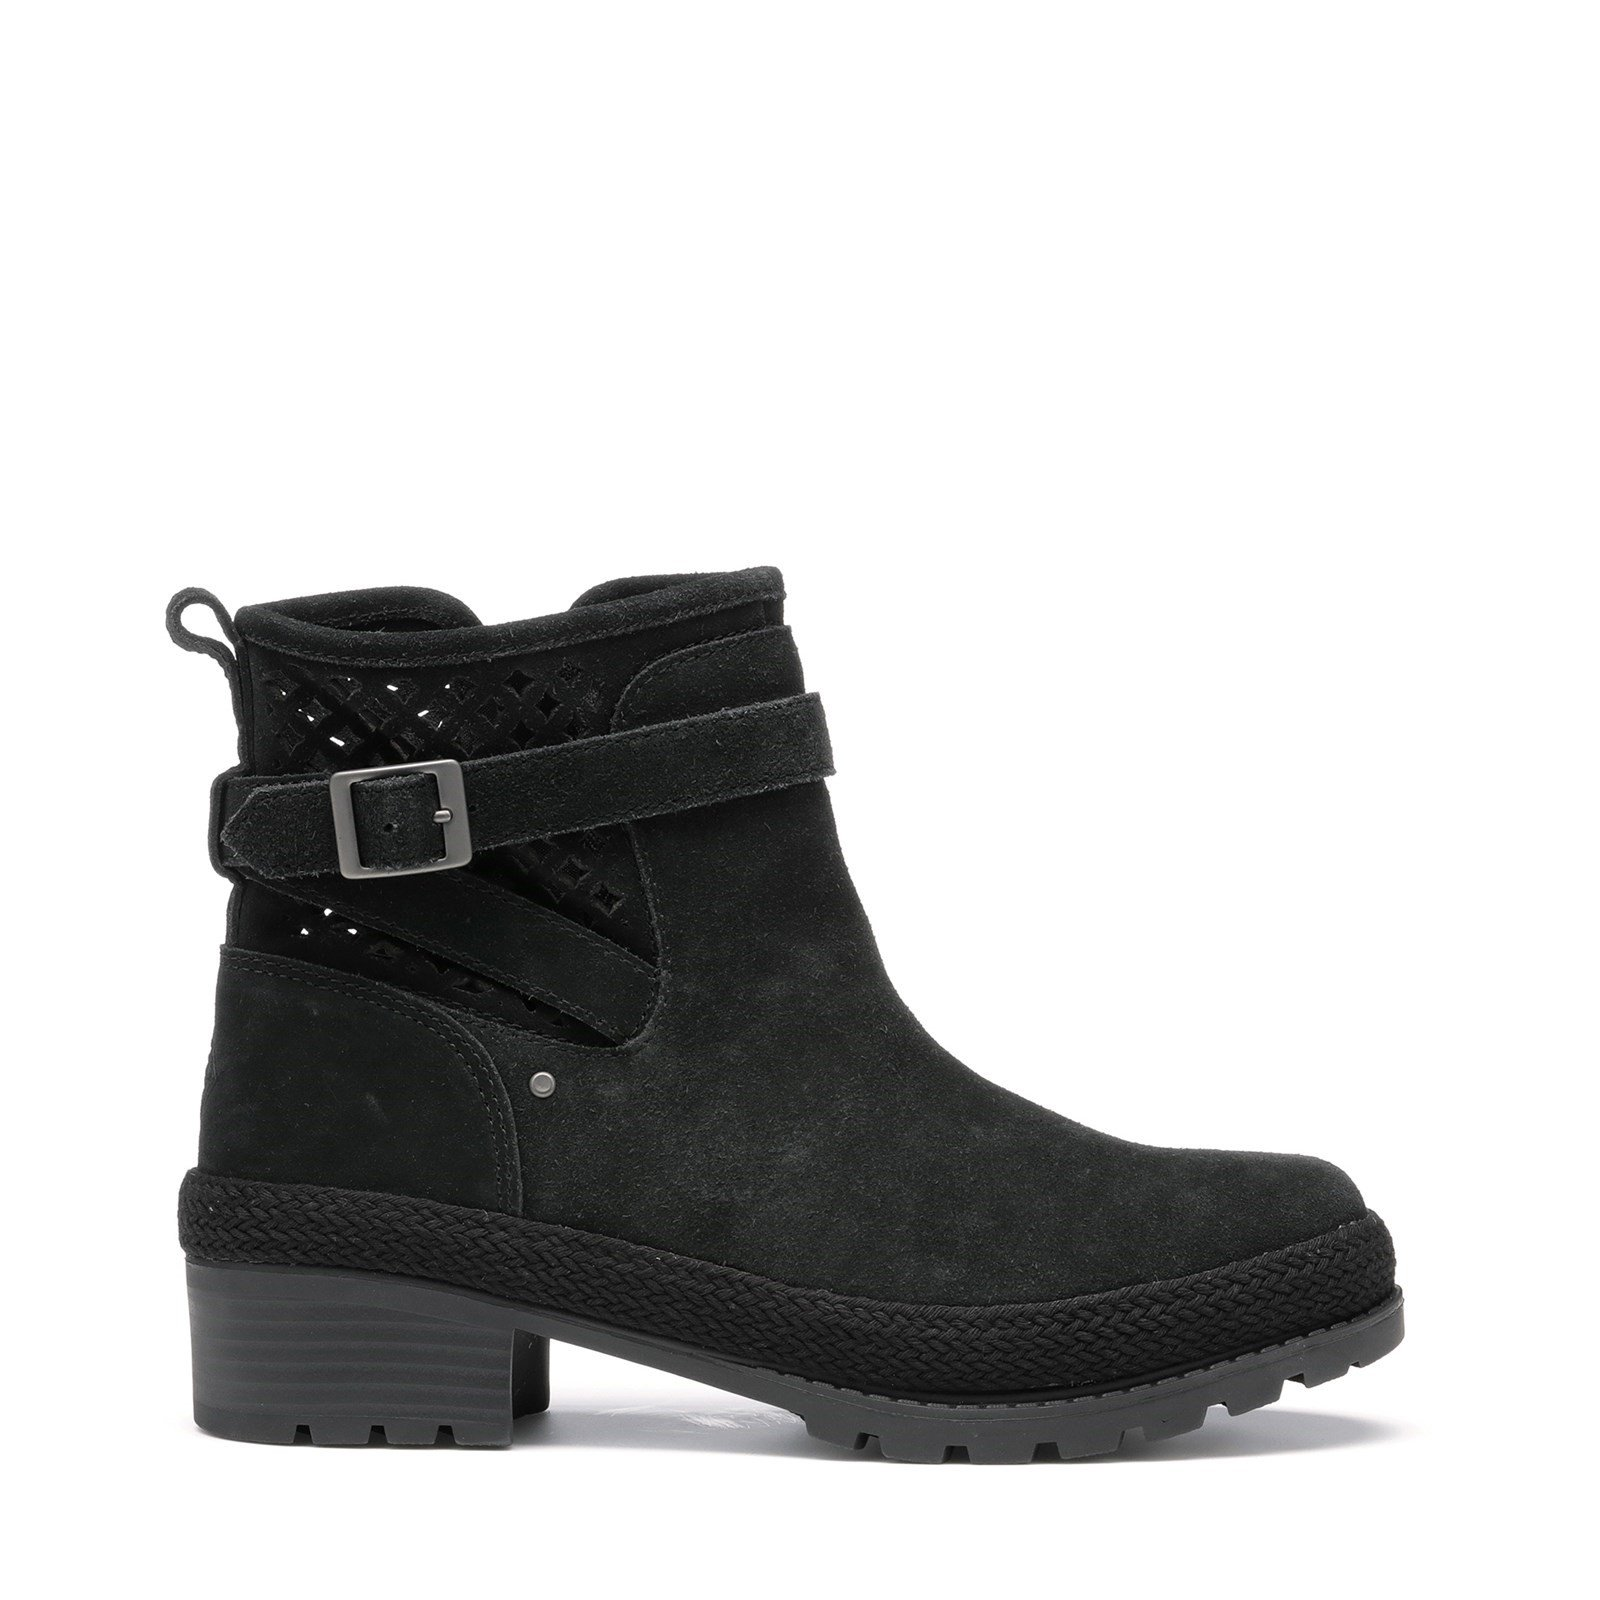 Muck Boots Women's Liberty Perforated Leather Boots Various Colours 31814 - Black 5